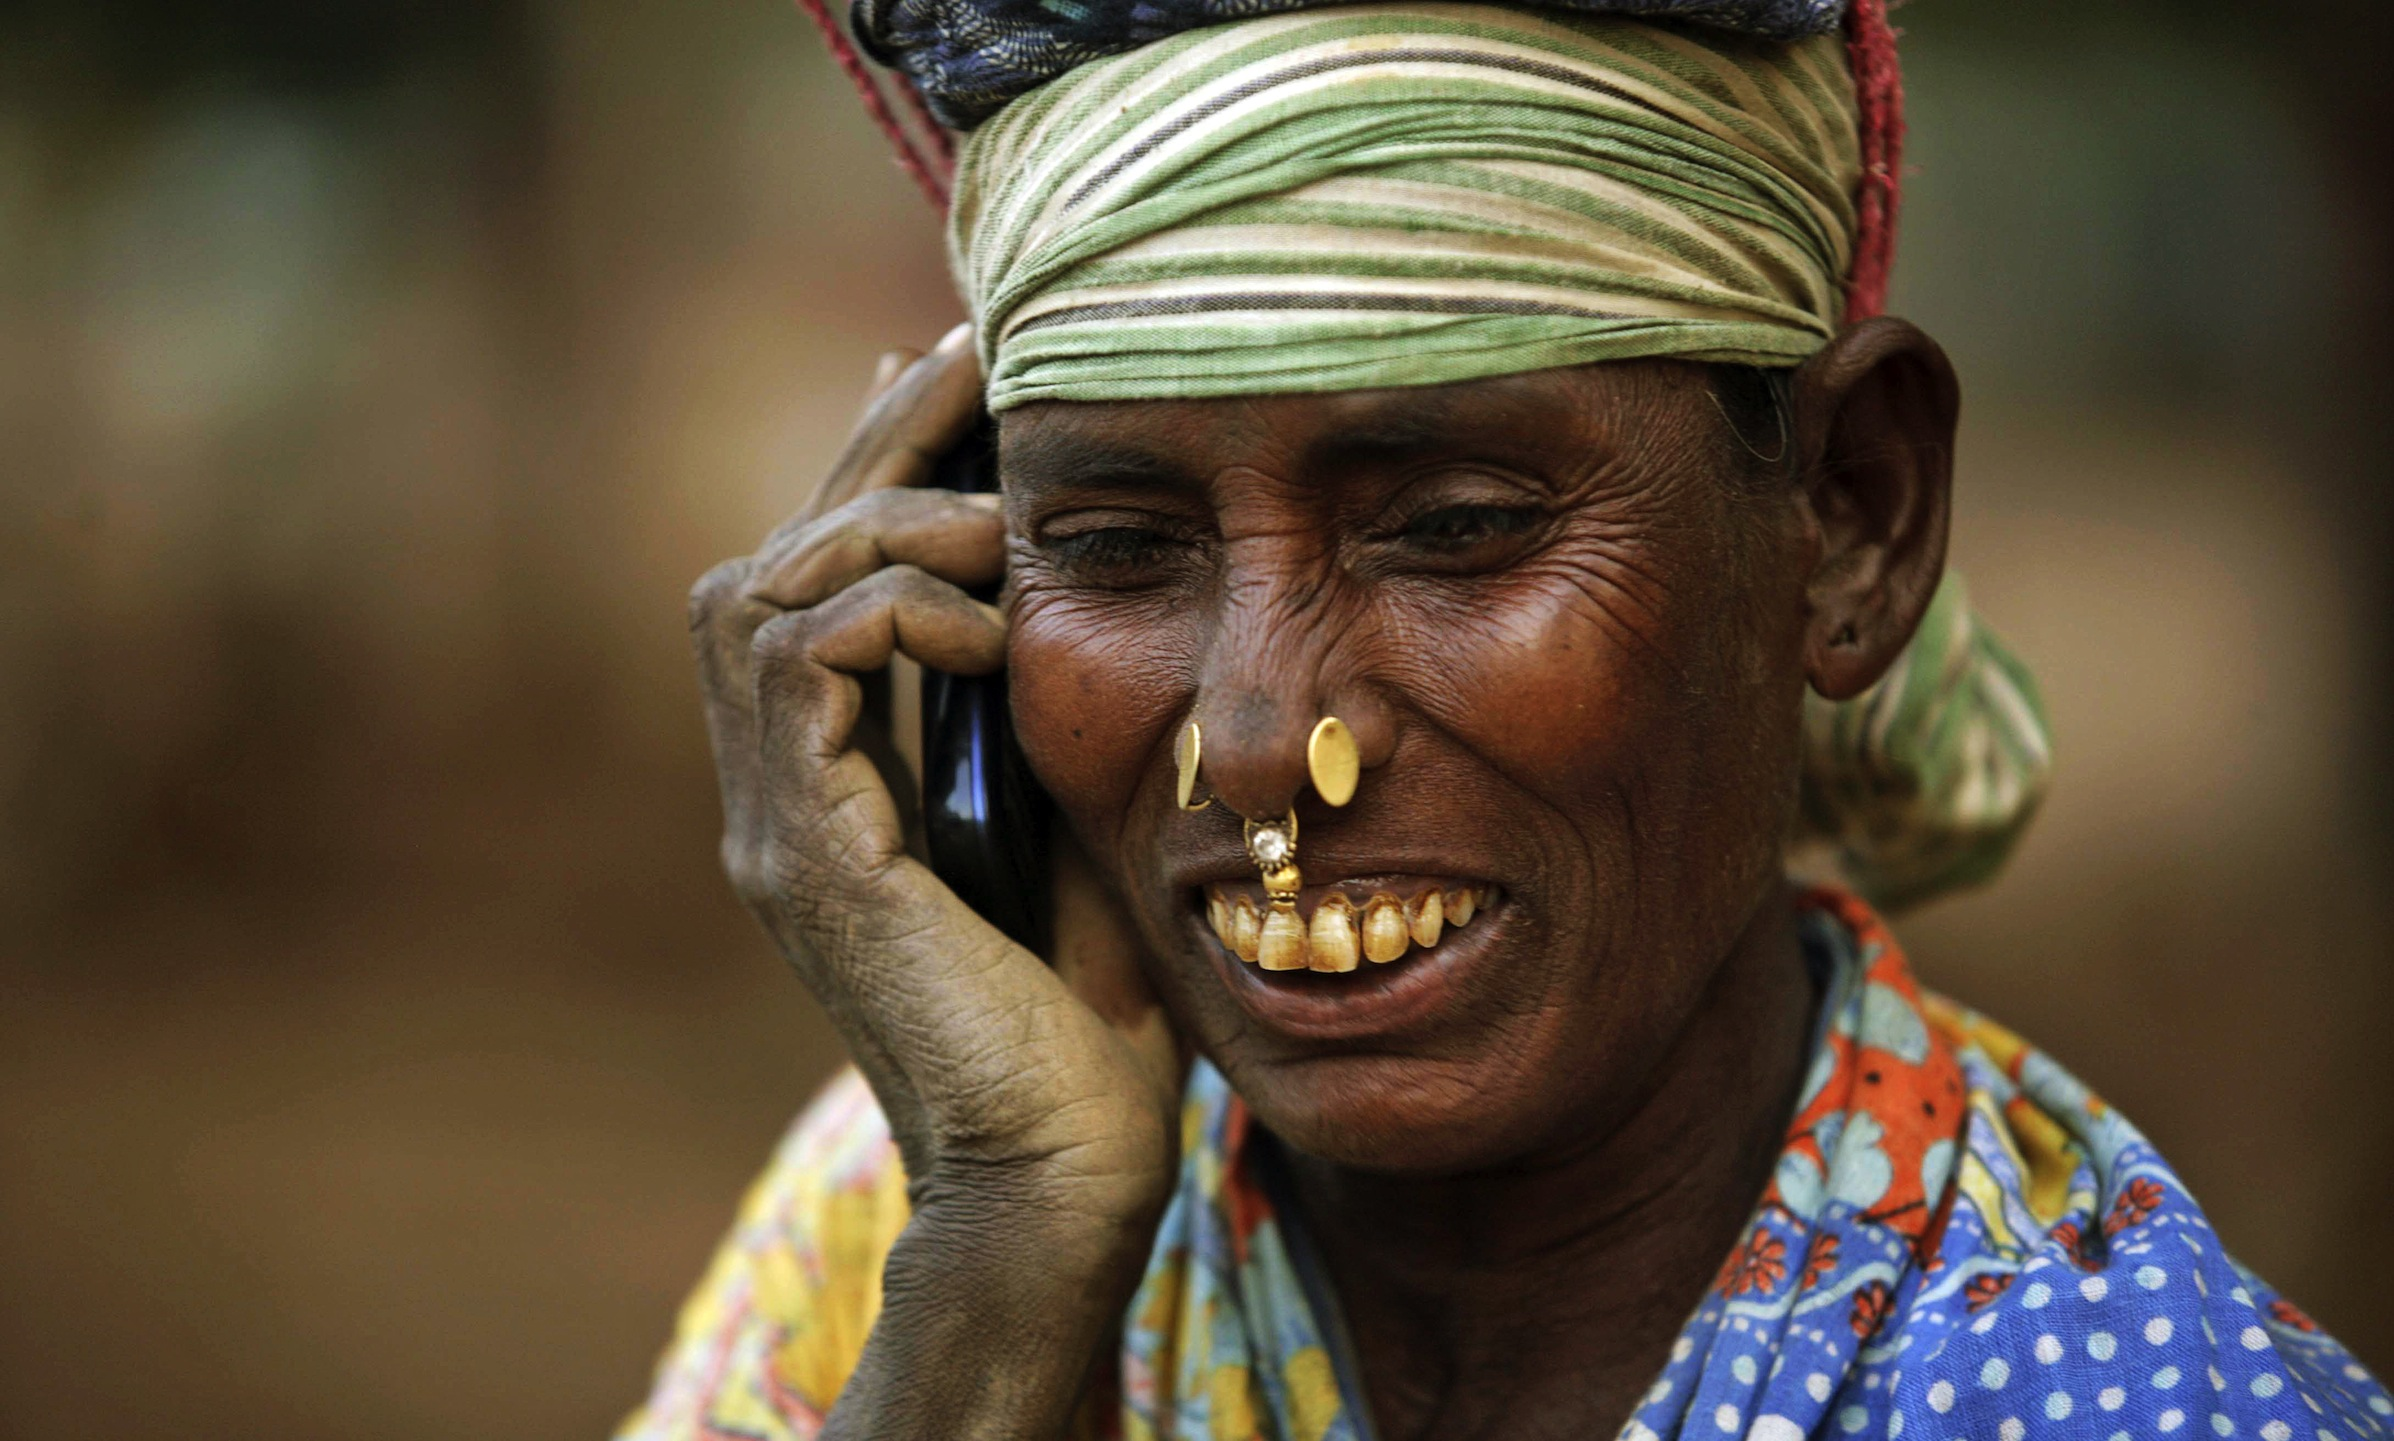 An Indian daily wage laborer talks on a mobile phone, at a construction site in Bhubaneshwar, India, Thursday, Feb. 2, 2012. India's top court ordered the government on Thursday to cancel 122 cellphone licenses granted to companies during an irregular sale of spectrum that has been branded one of the largest scandals in India's history. (AP Photo/Biswaranjan Rout)